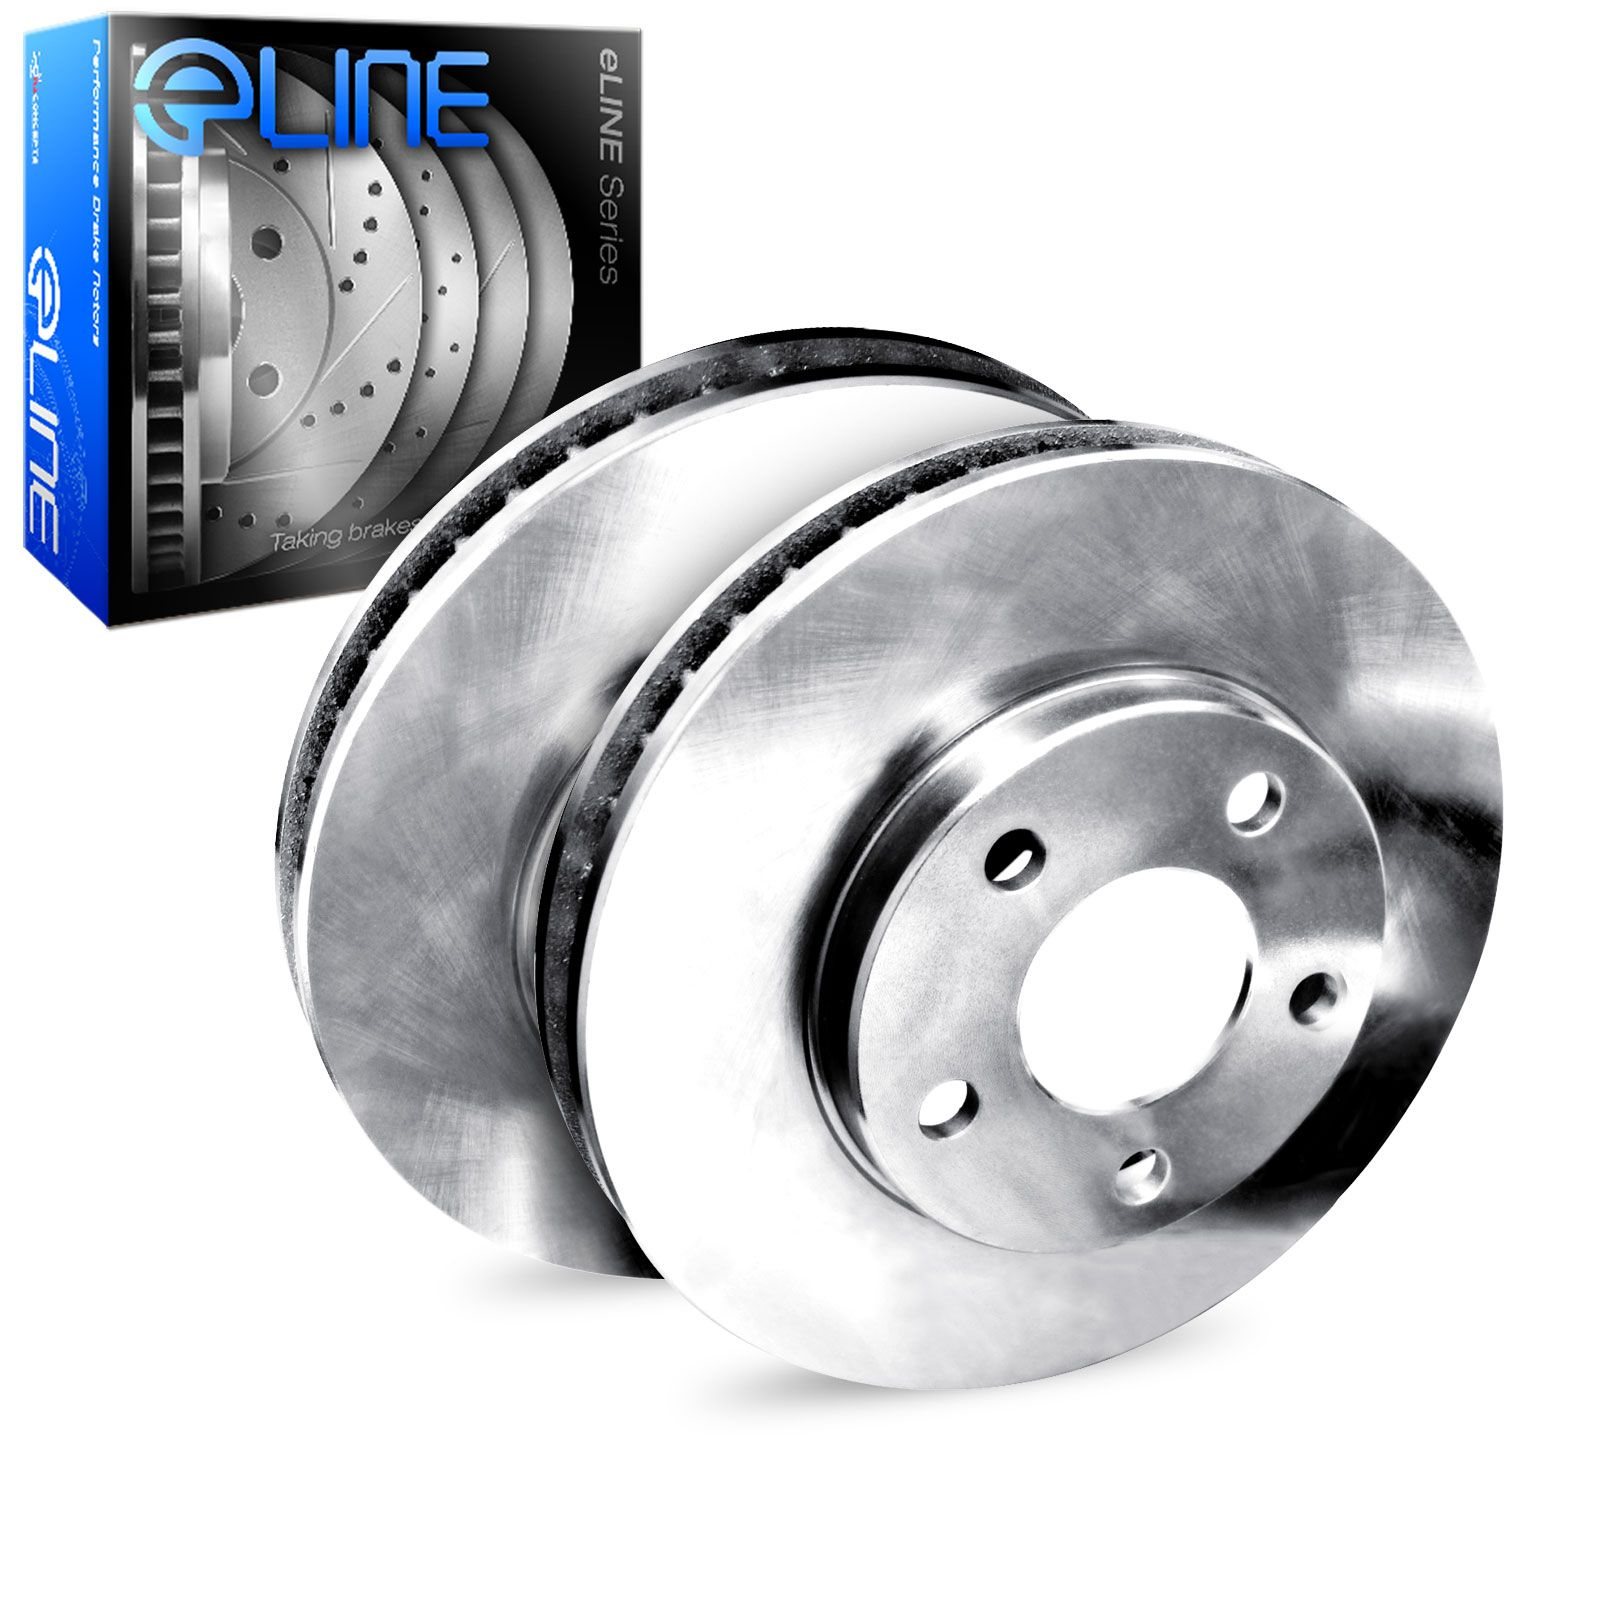 Used brake rotors for the mercedes benz 280sl for Mercedes benz rotors replacement